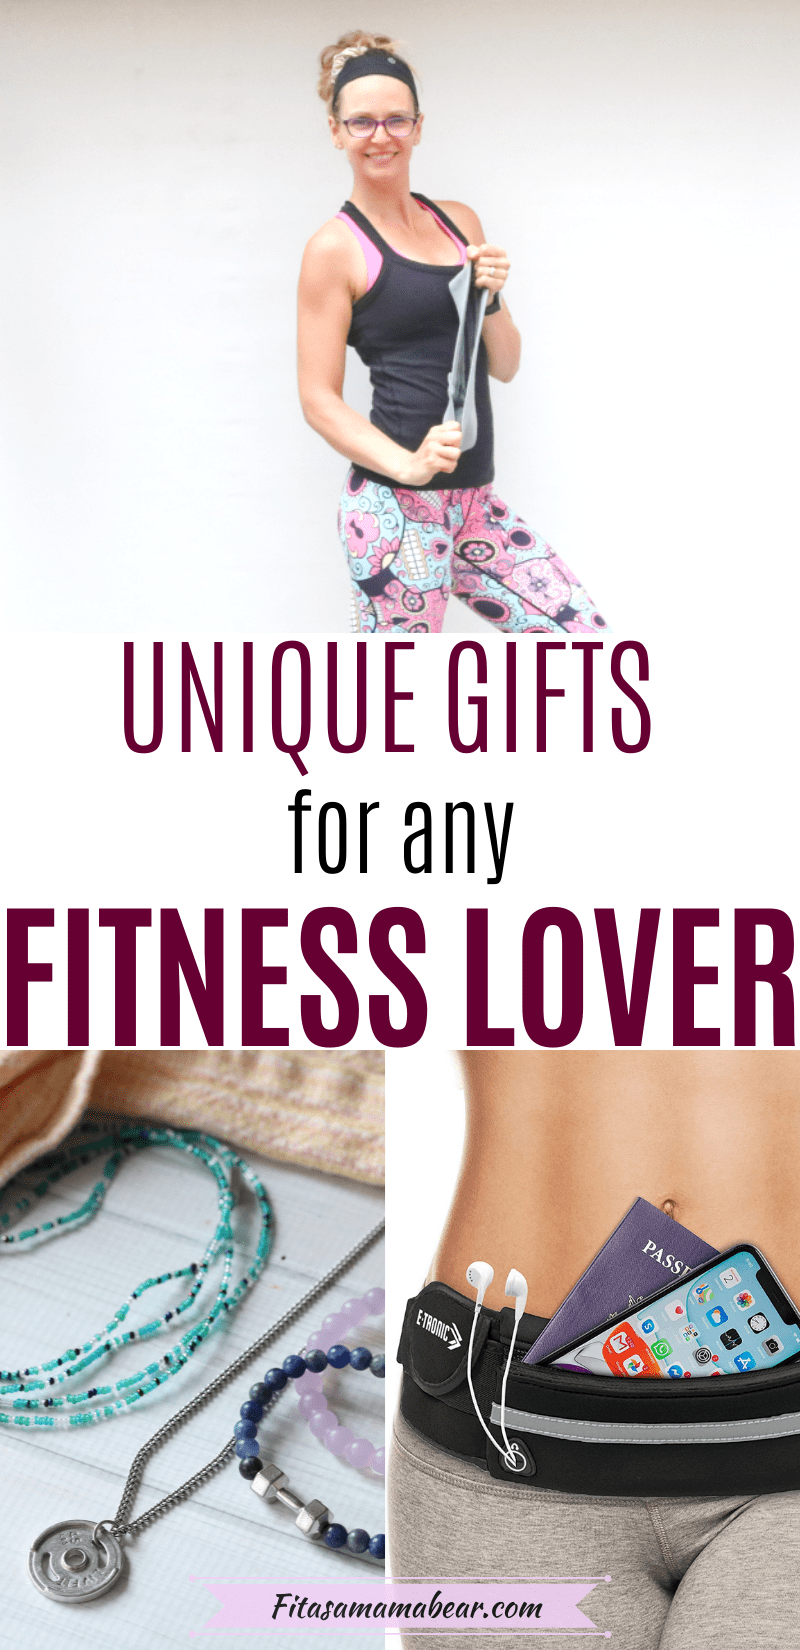 Pinterest image with text: three images, the top one of a woman flexing and holding a resistance band in workout clothes the bottom two images of fitness gift ideas for her